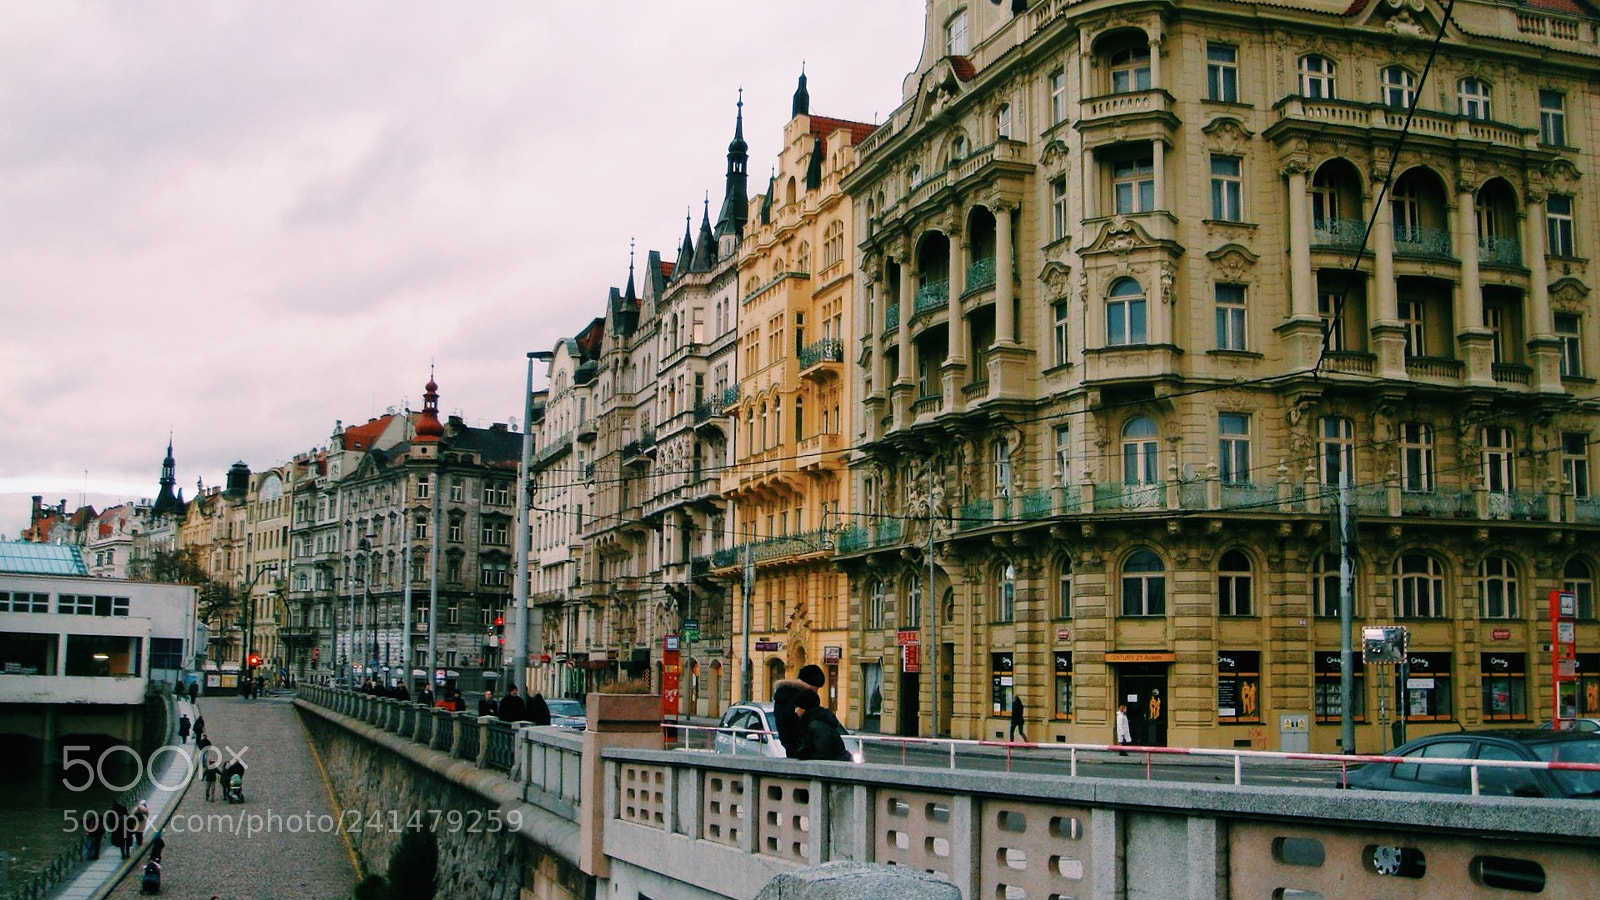 """Sony DSC-T300 sample photo. """"Lost in prague."""" photography"""